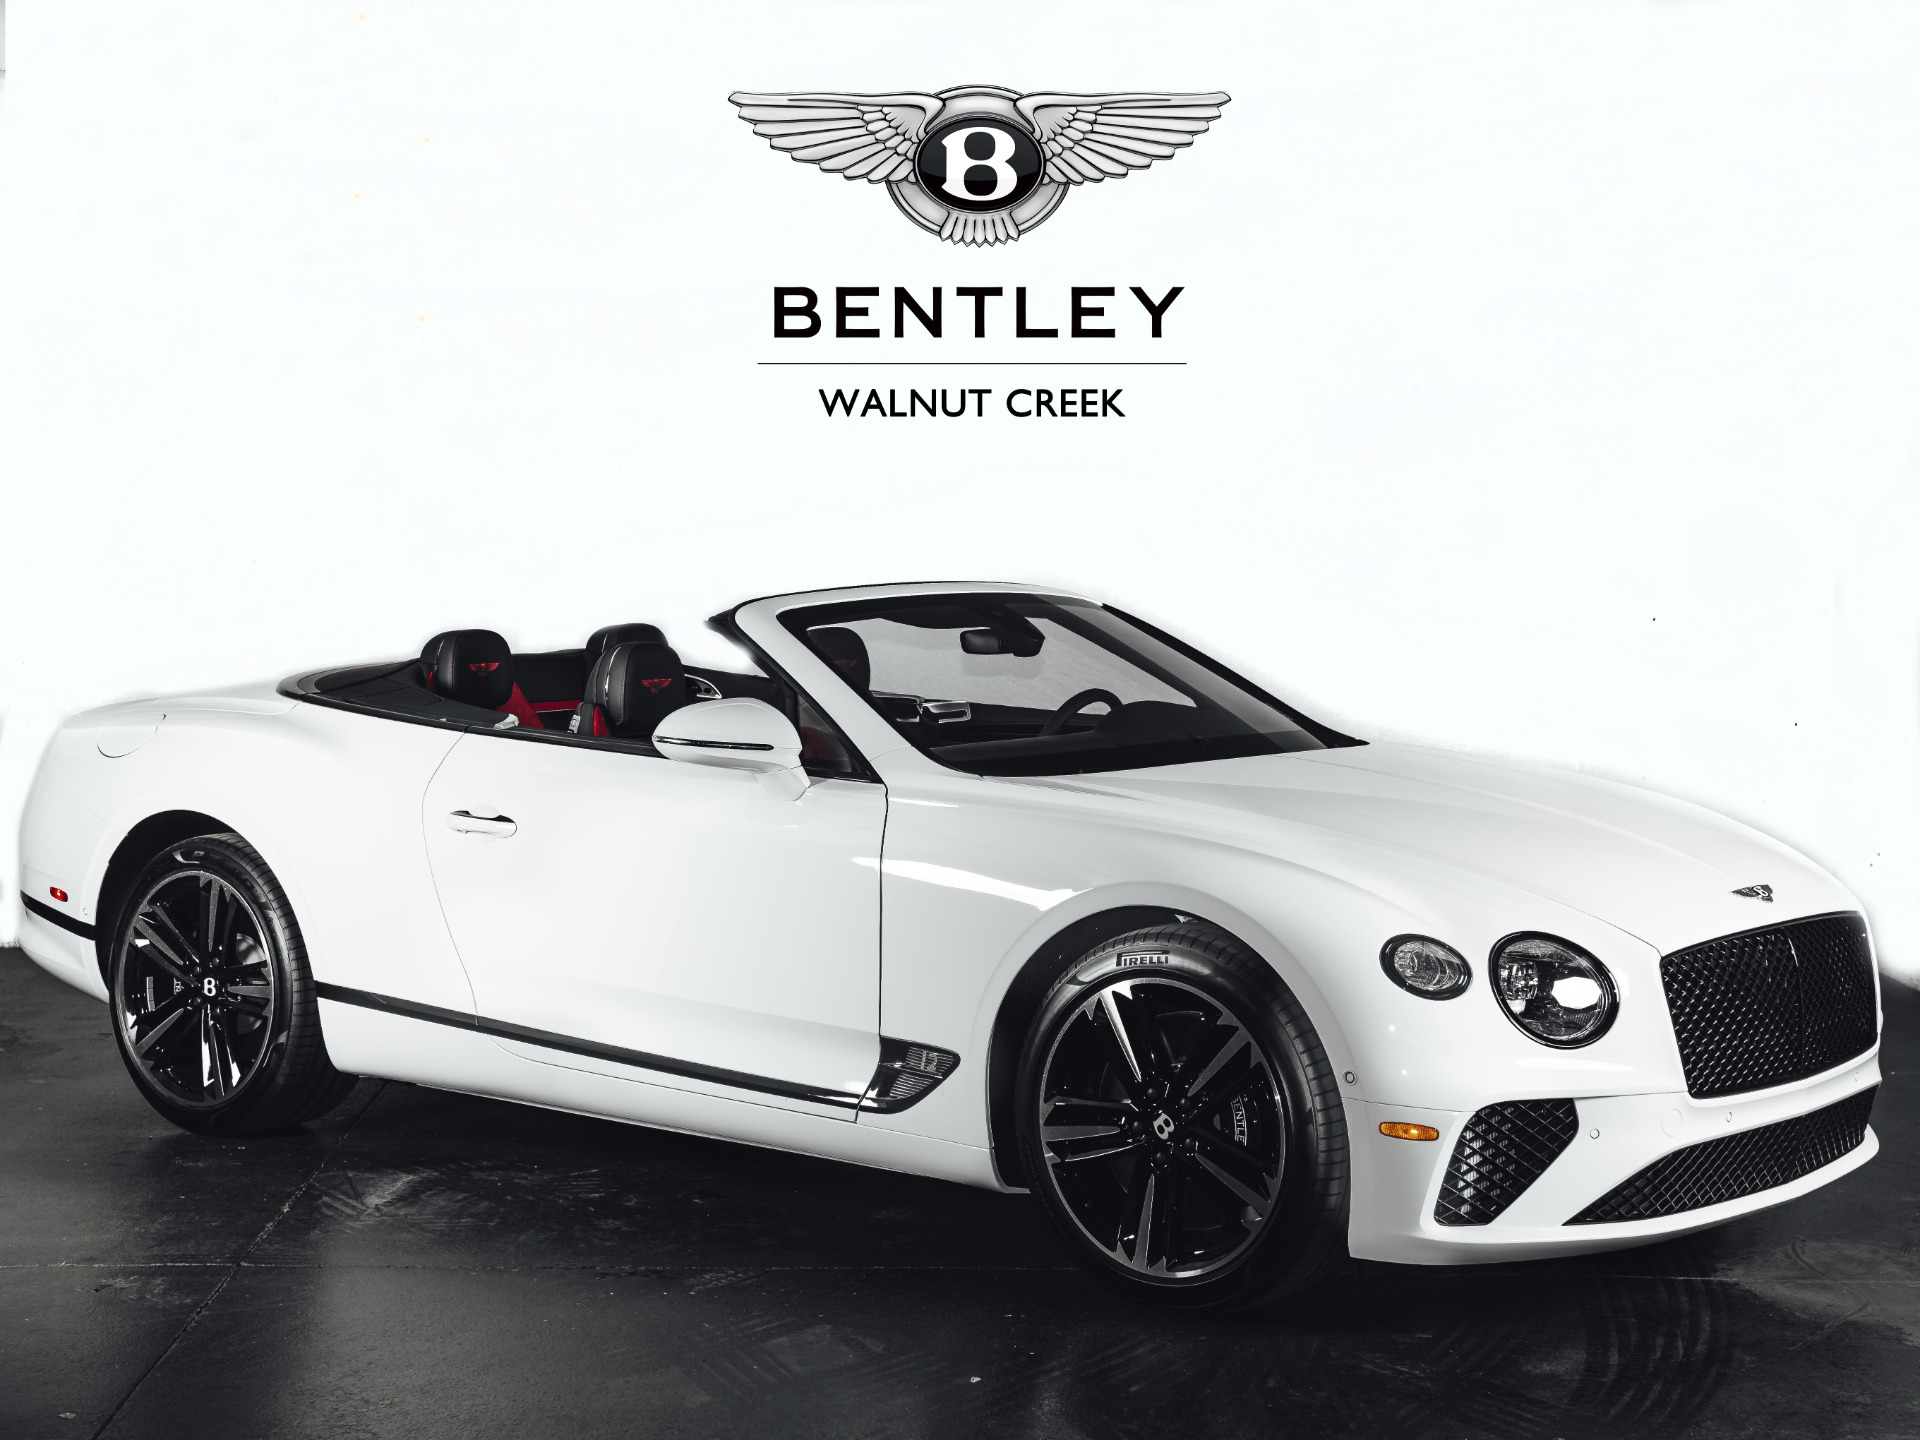 New 2020 Bentley Continental Gt W12 Convertible For Sale Sold The Luxury Collection Walnut Creek Stock B236